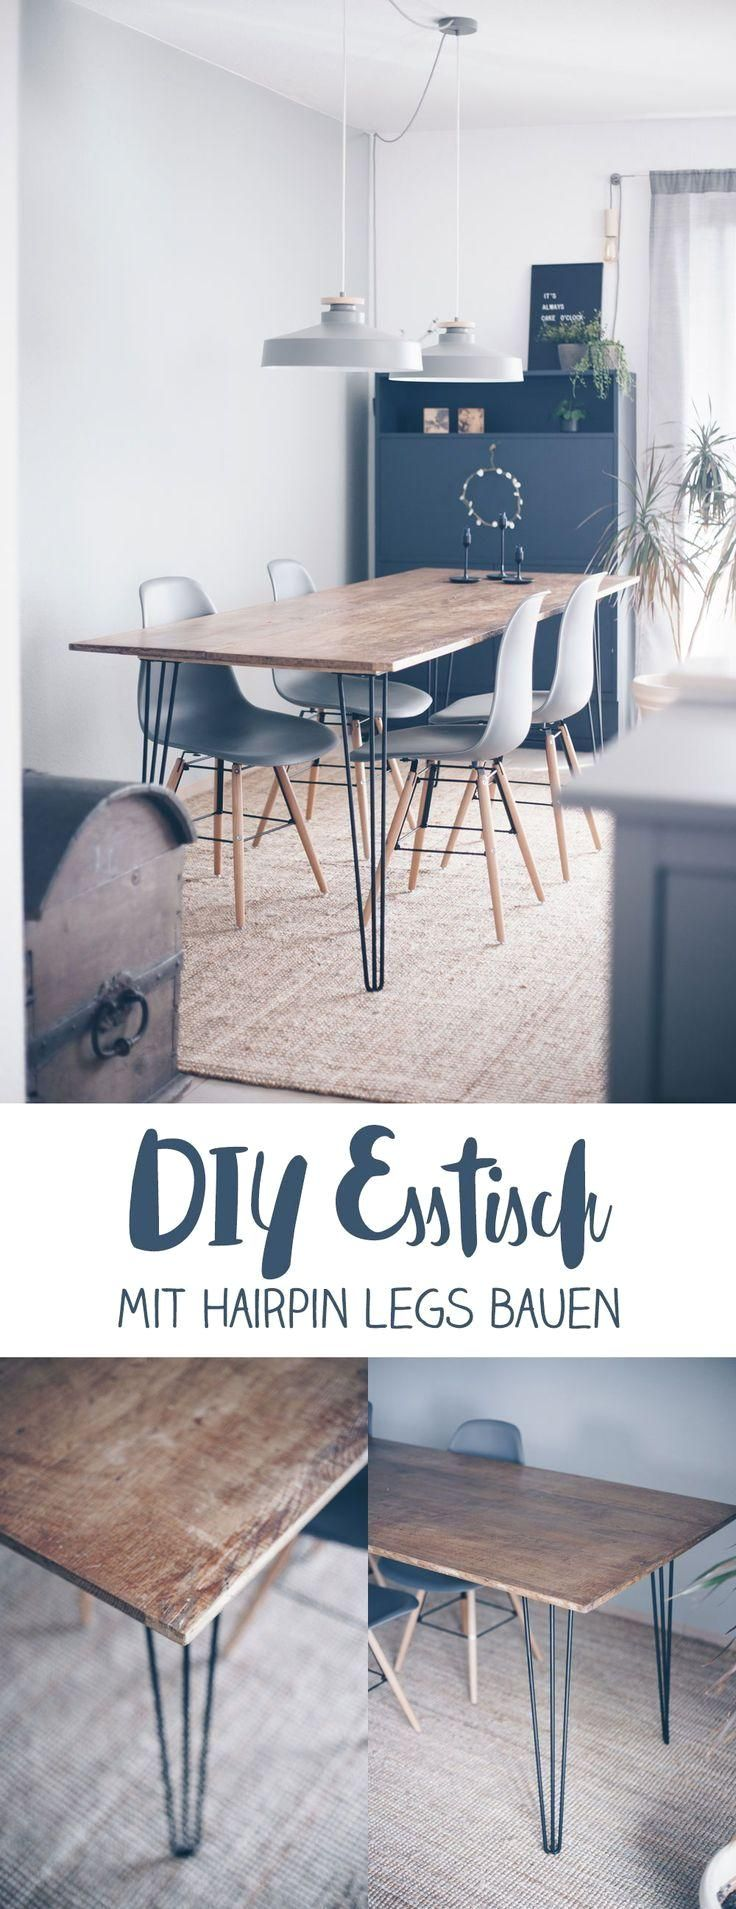 Make yourself a DIY dining table with Hairpin Legs build